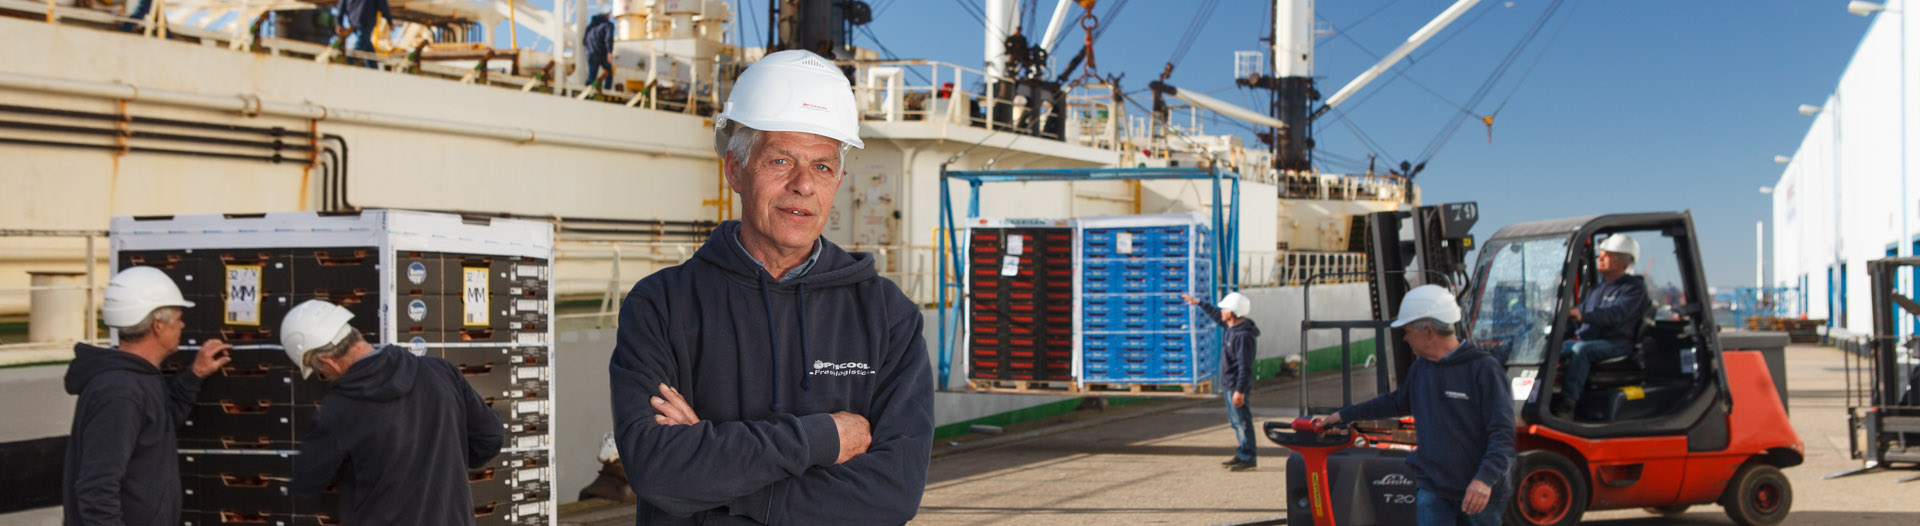 Opticool Stevedoring - weniger CO2-Emissionen